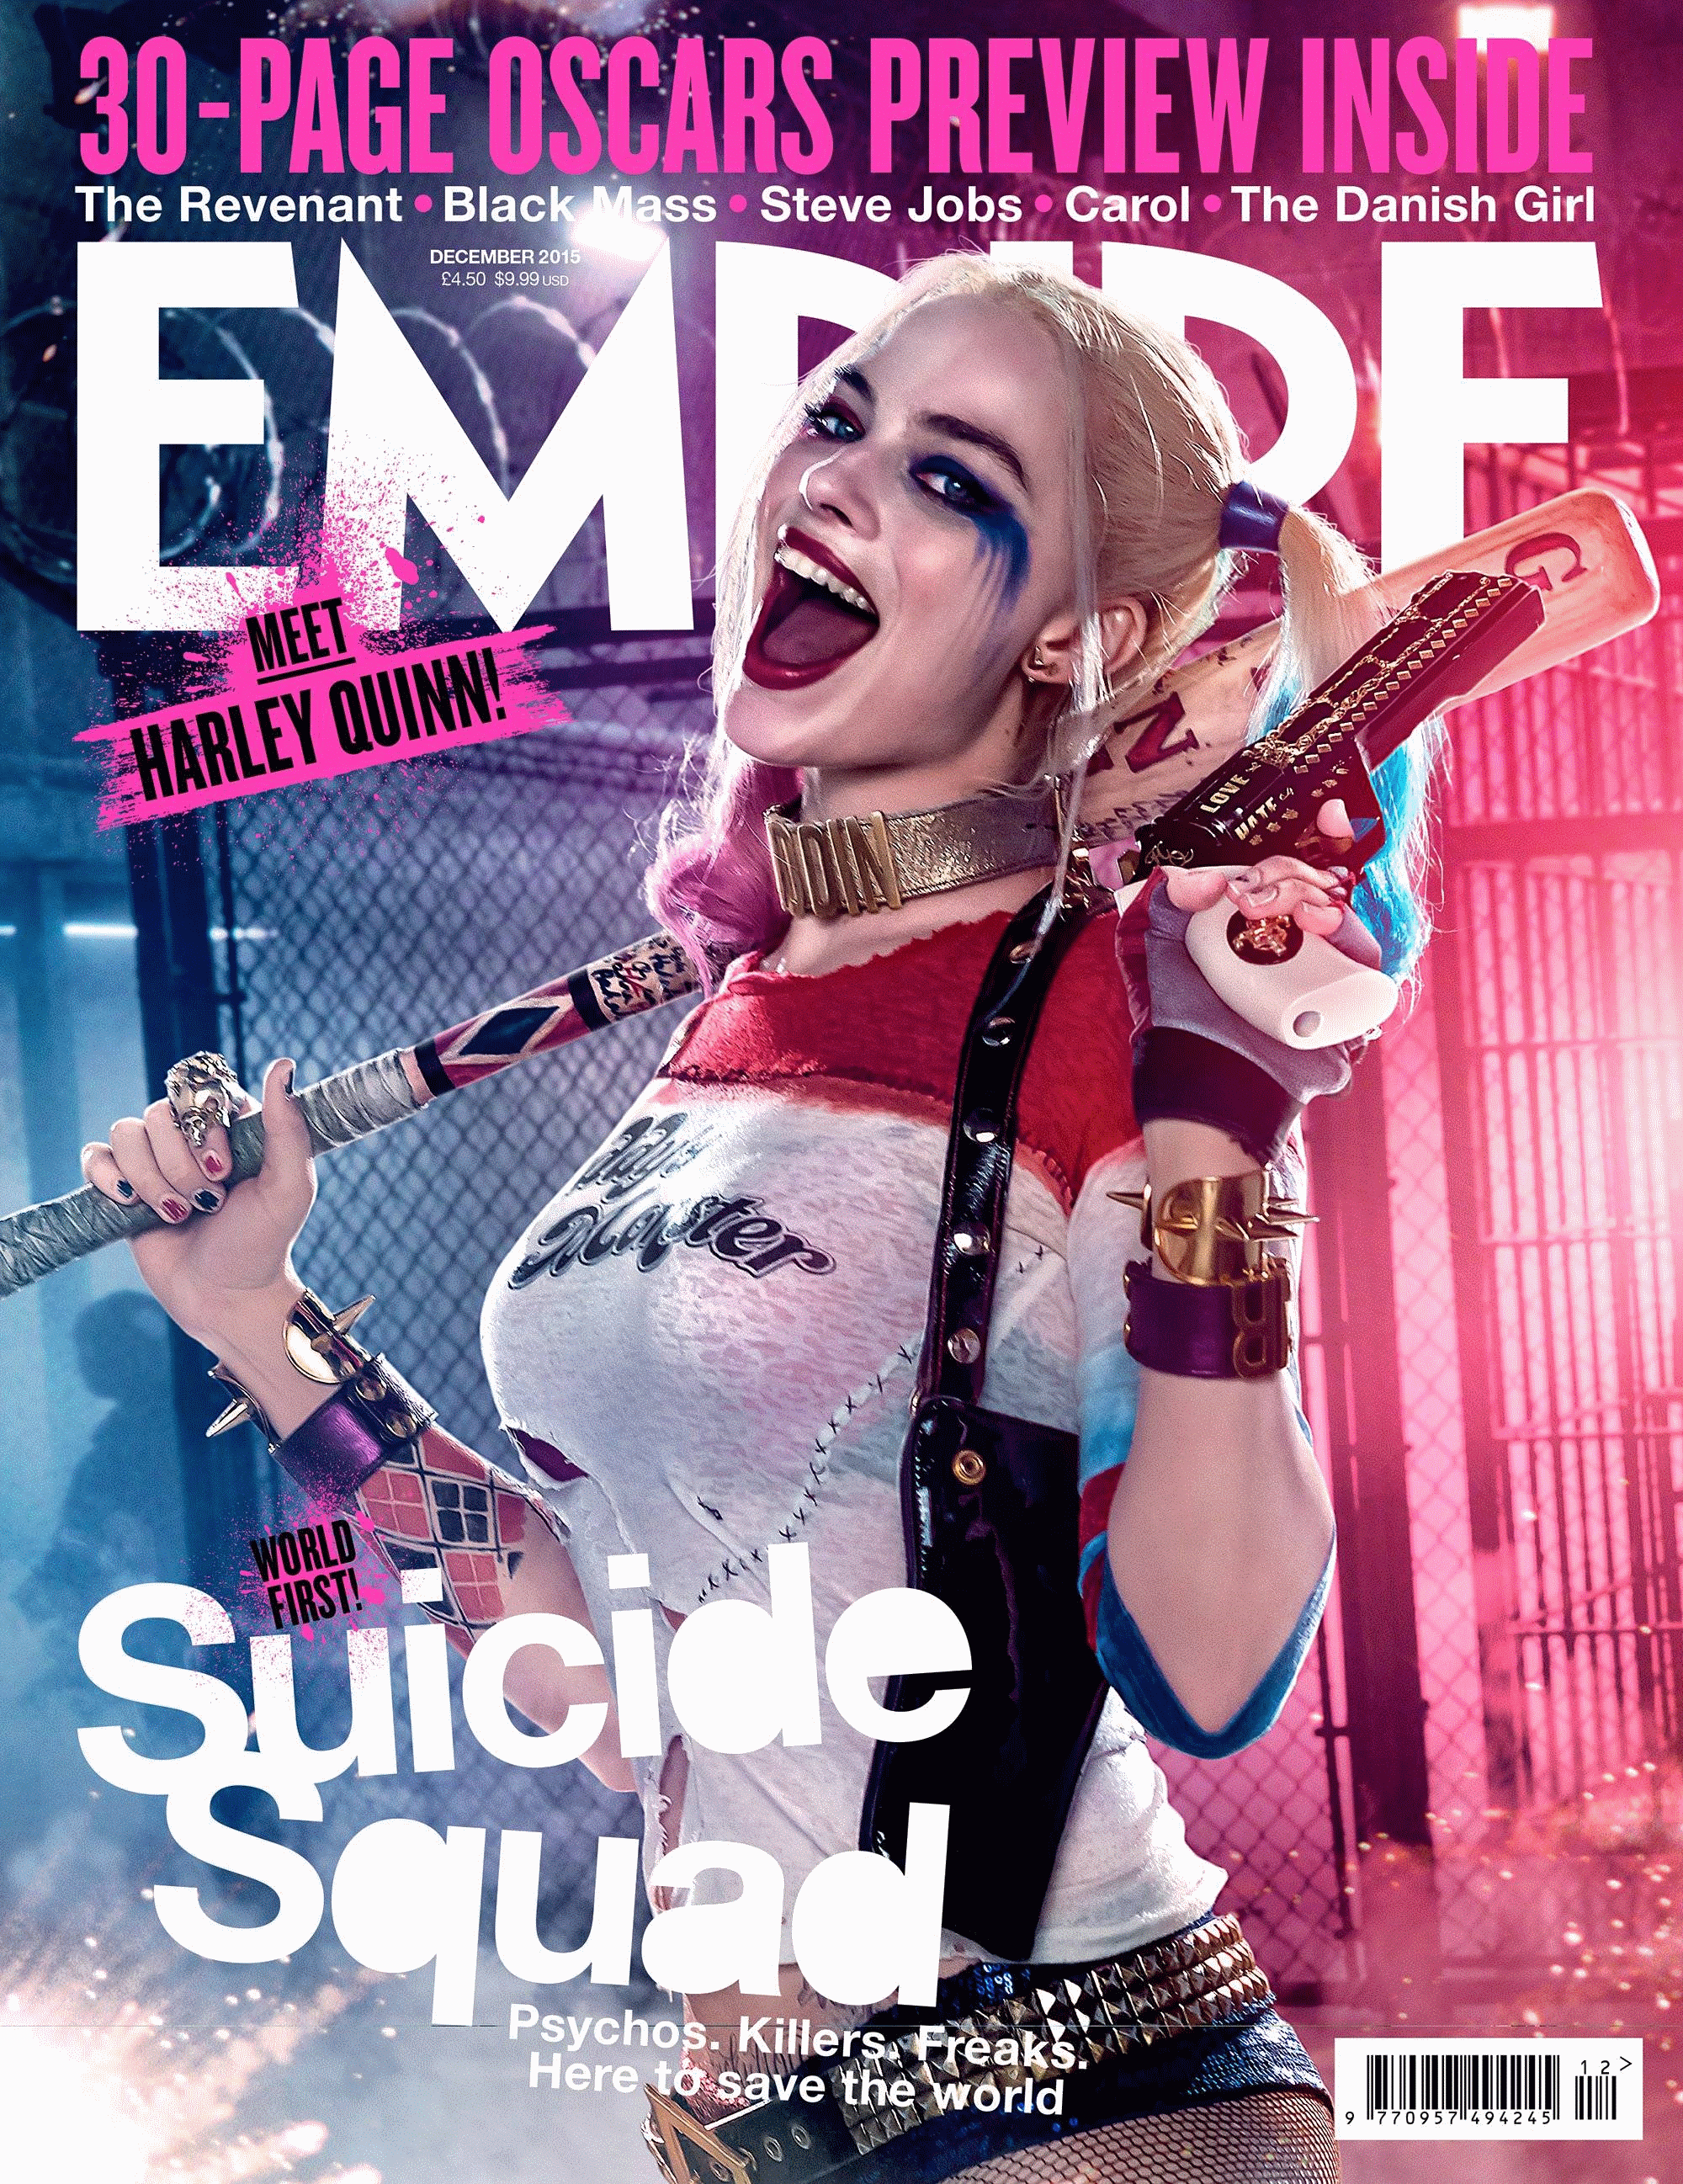 Image Empire Suicide Squad Harley Quinn Coverpng DC Extended